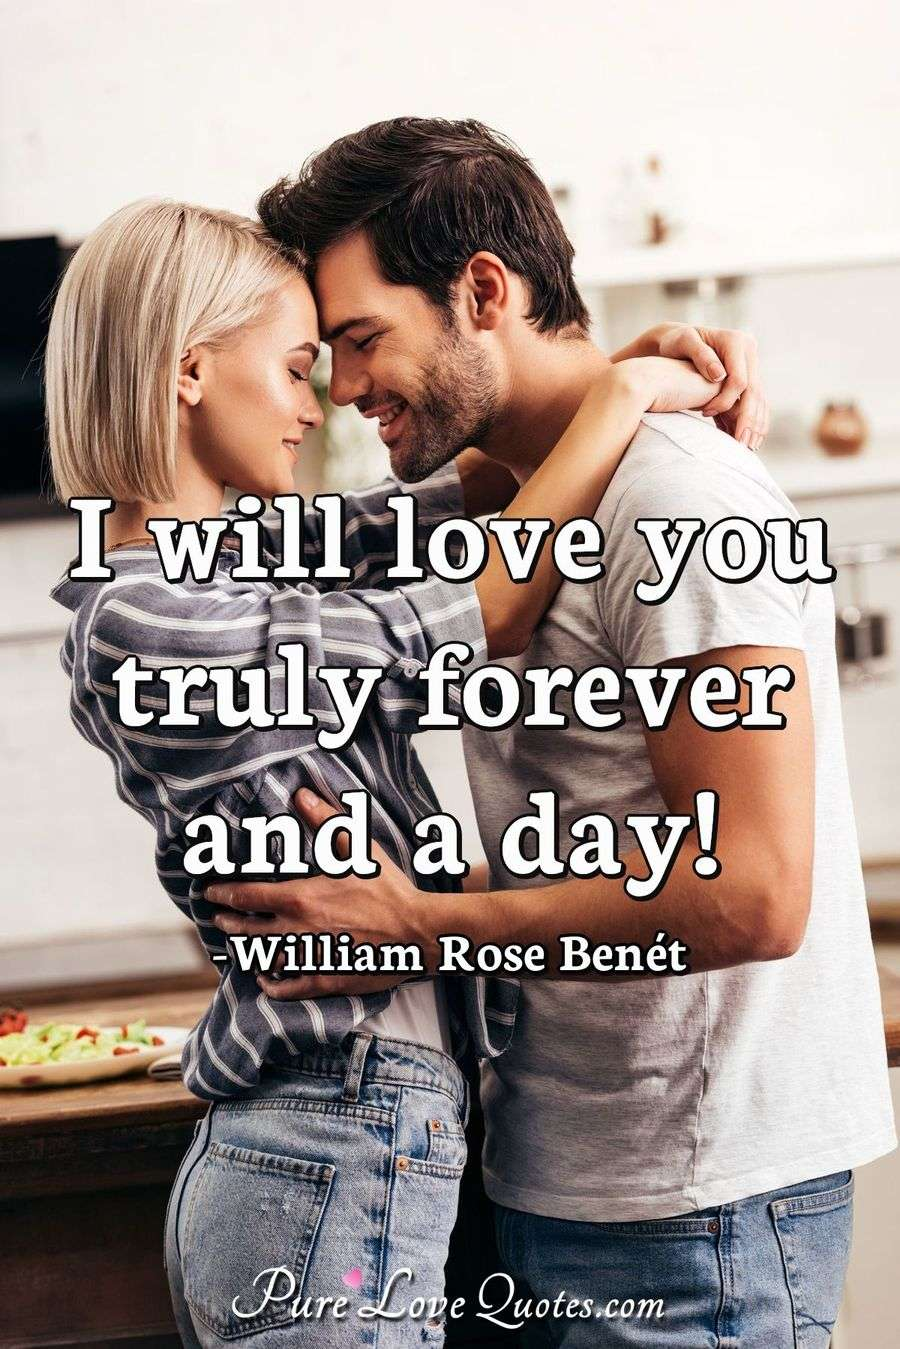 I will love you truly forever and a day!